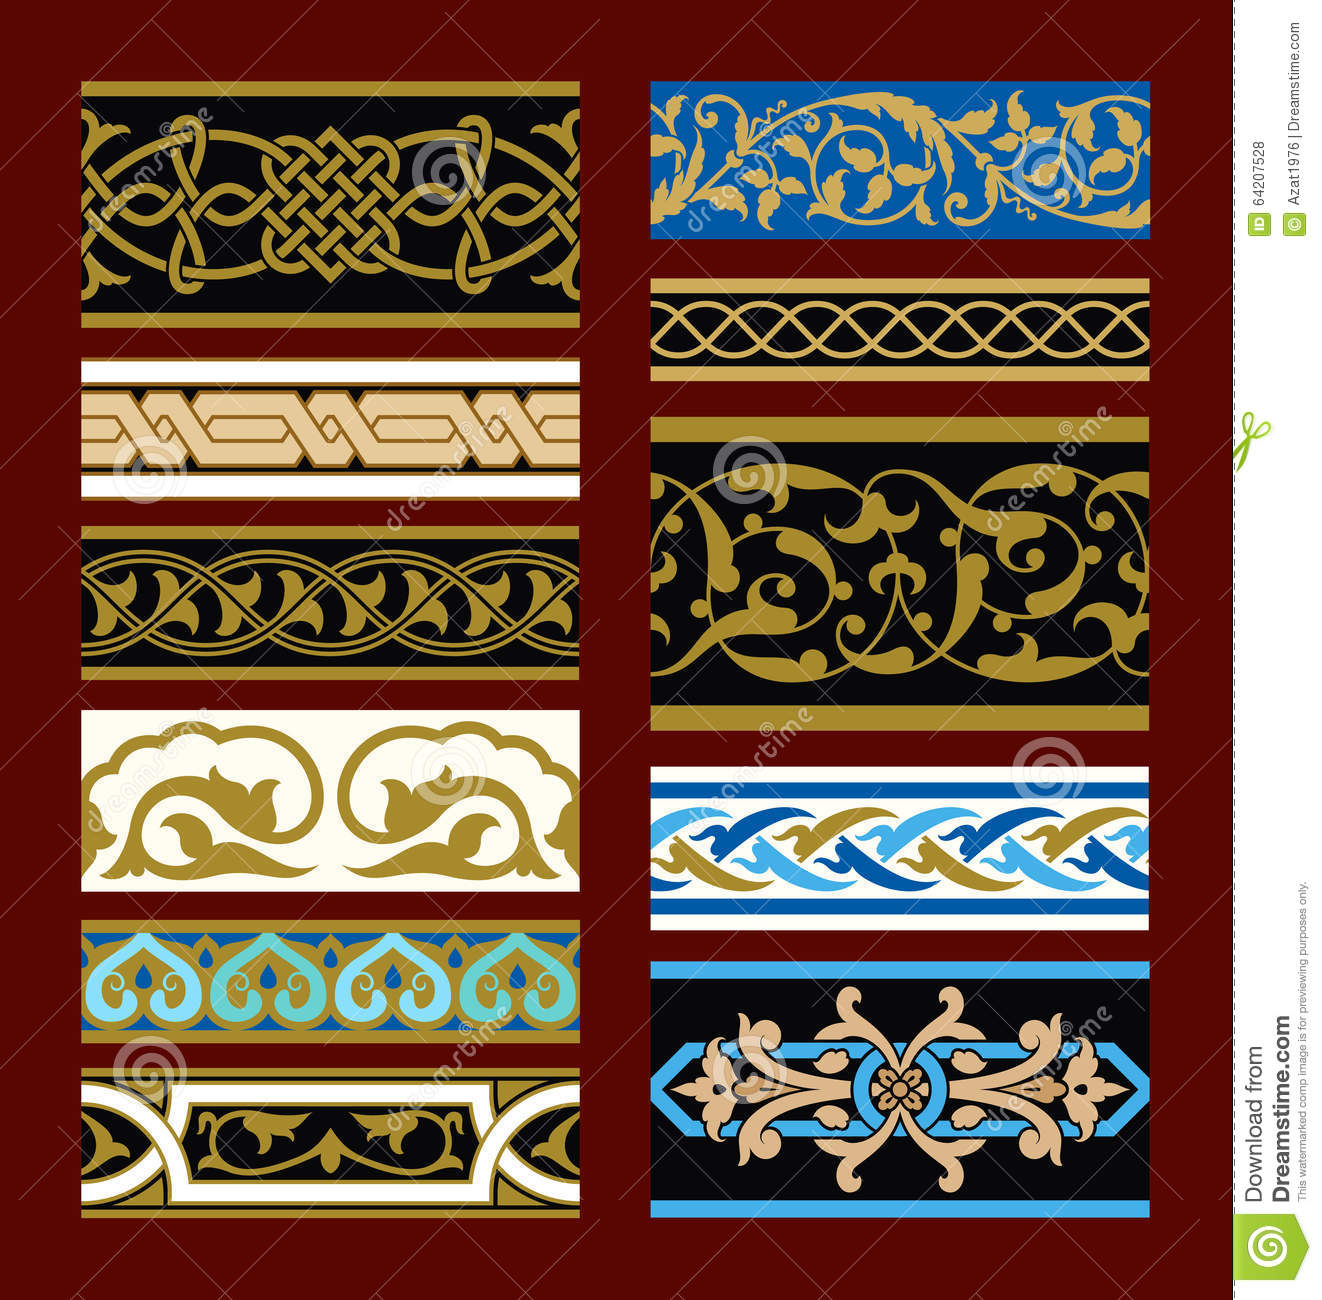 Medieval Seamless Borders Set Stock Vector - Illustration of ornate ...